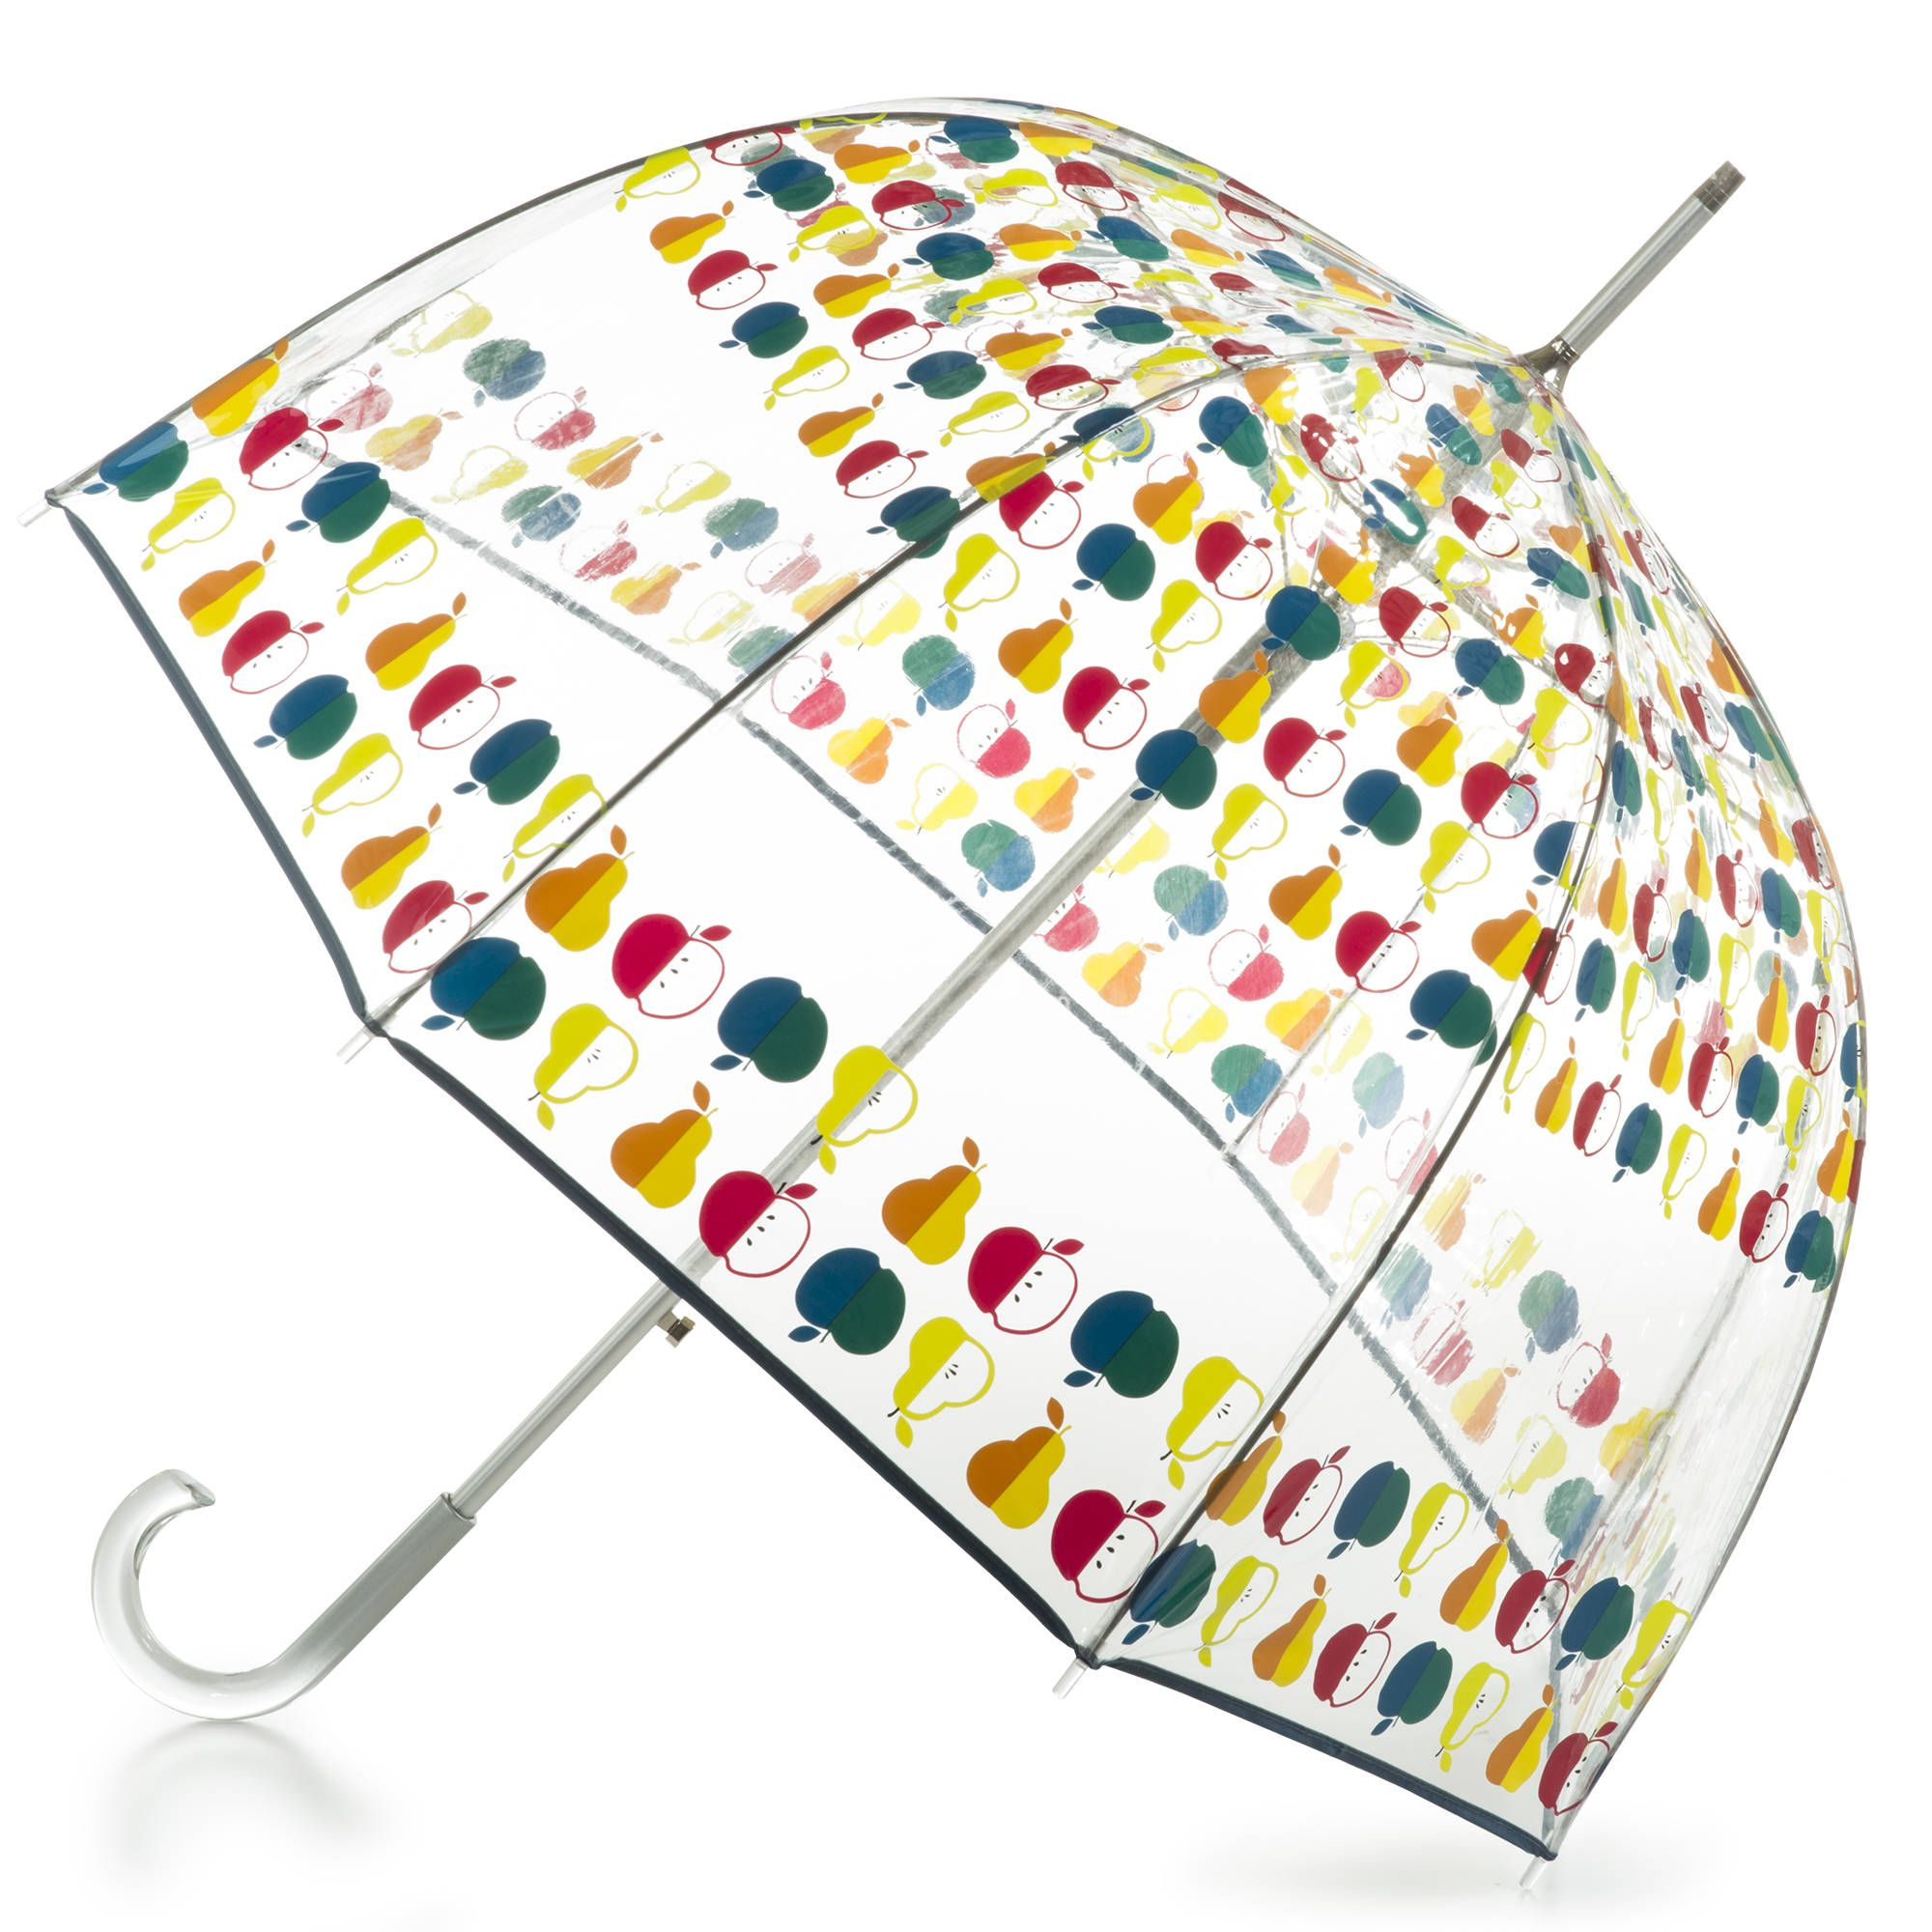 Totes Bubble Umbrella Fruit, autoopen Bubble umbrella